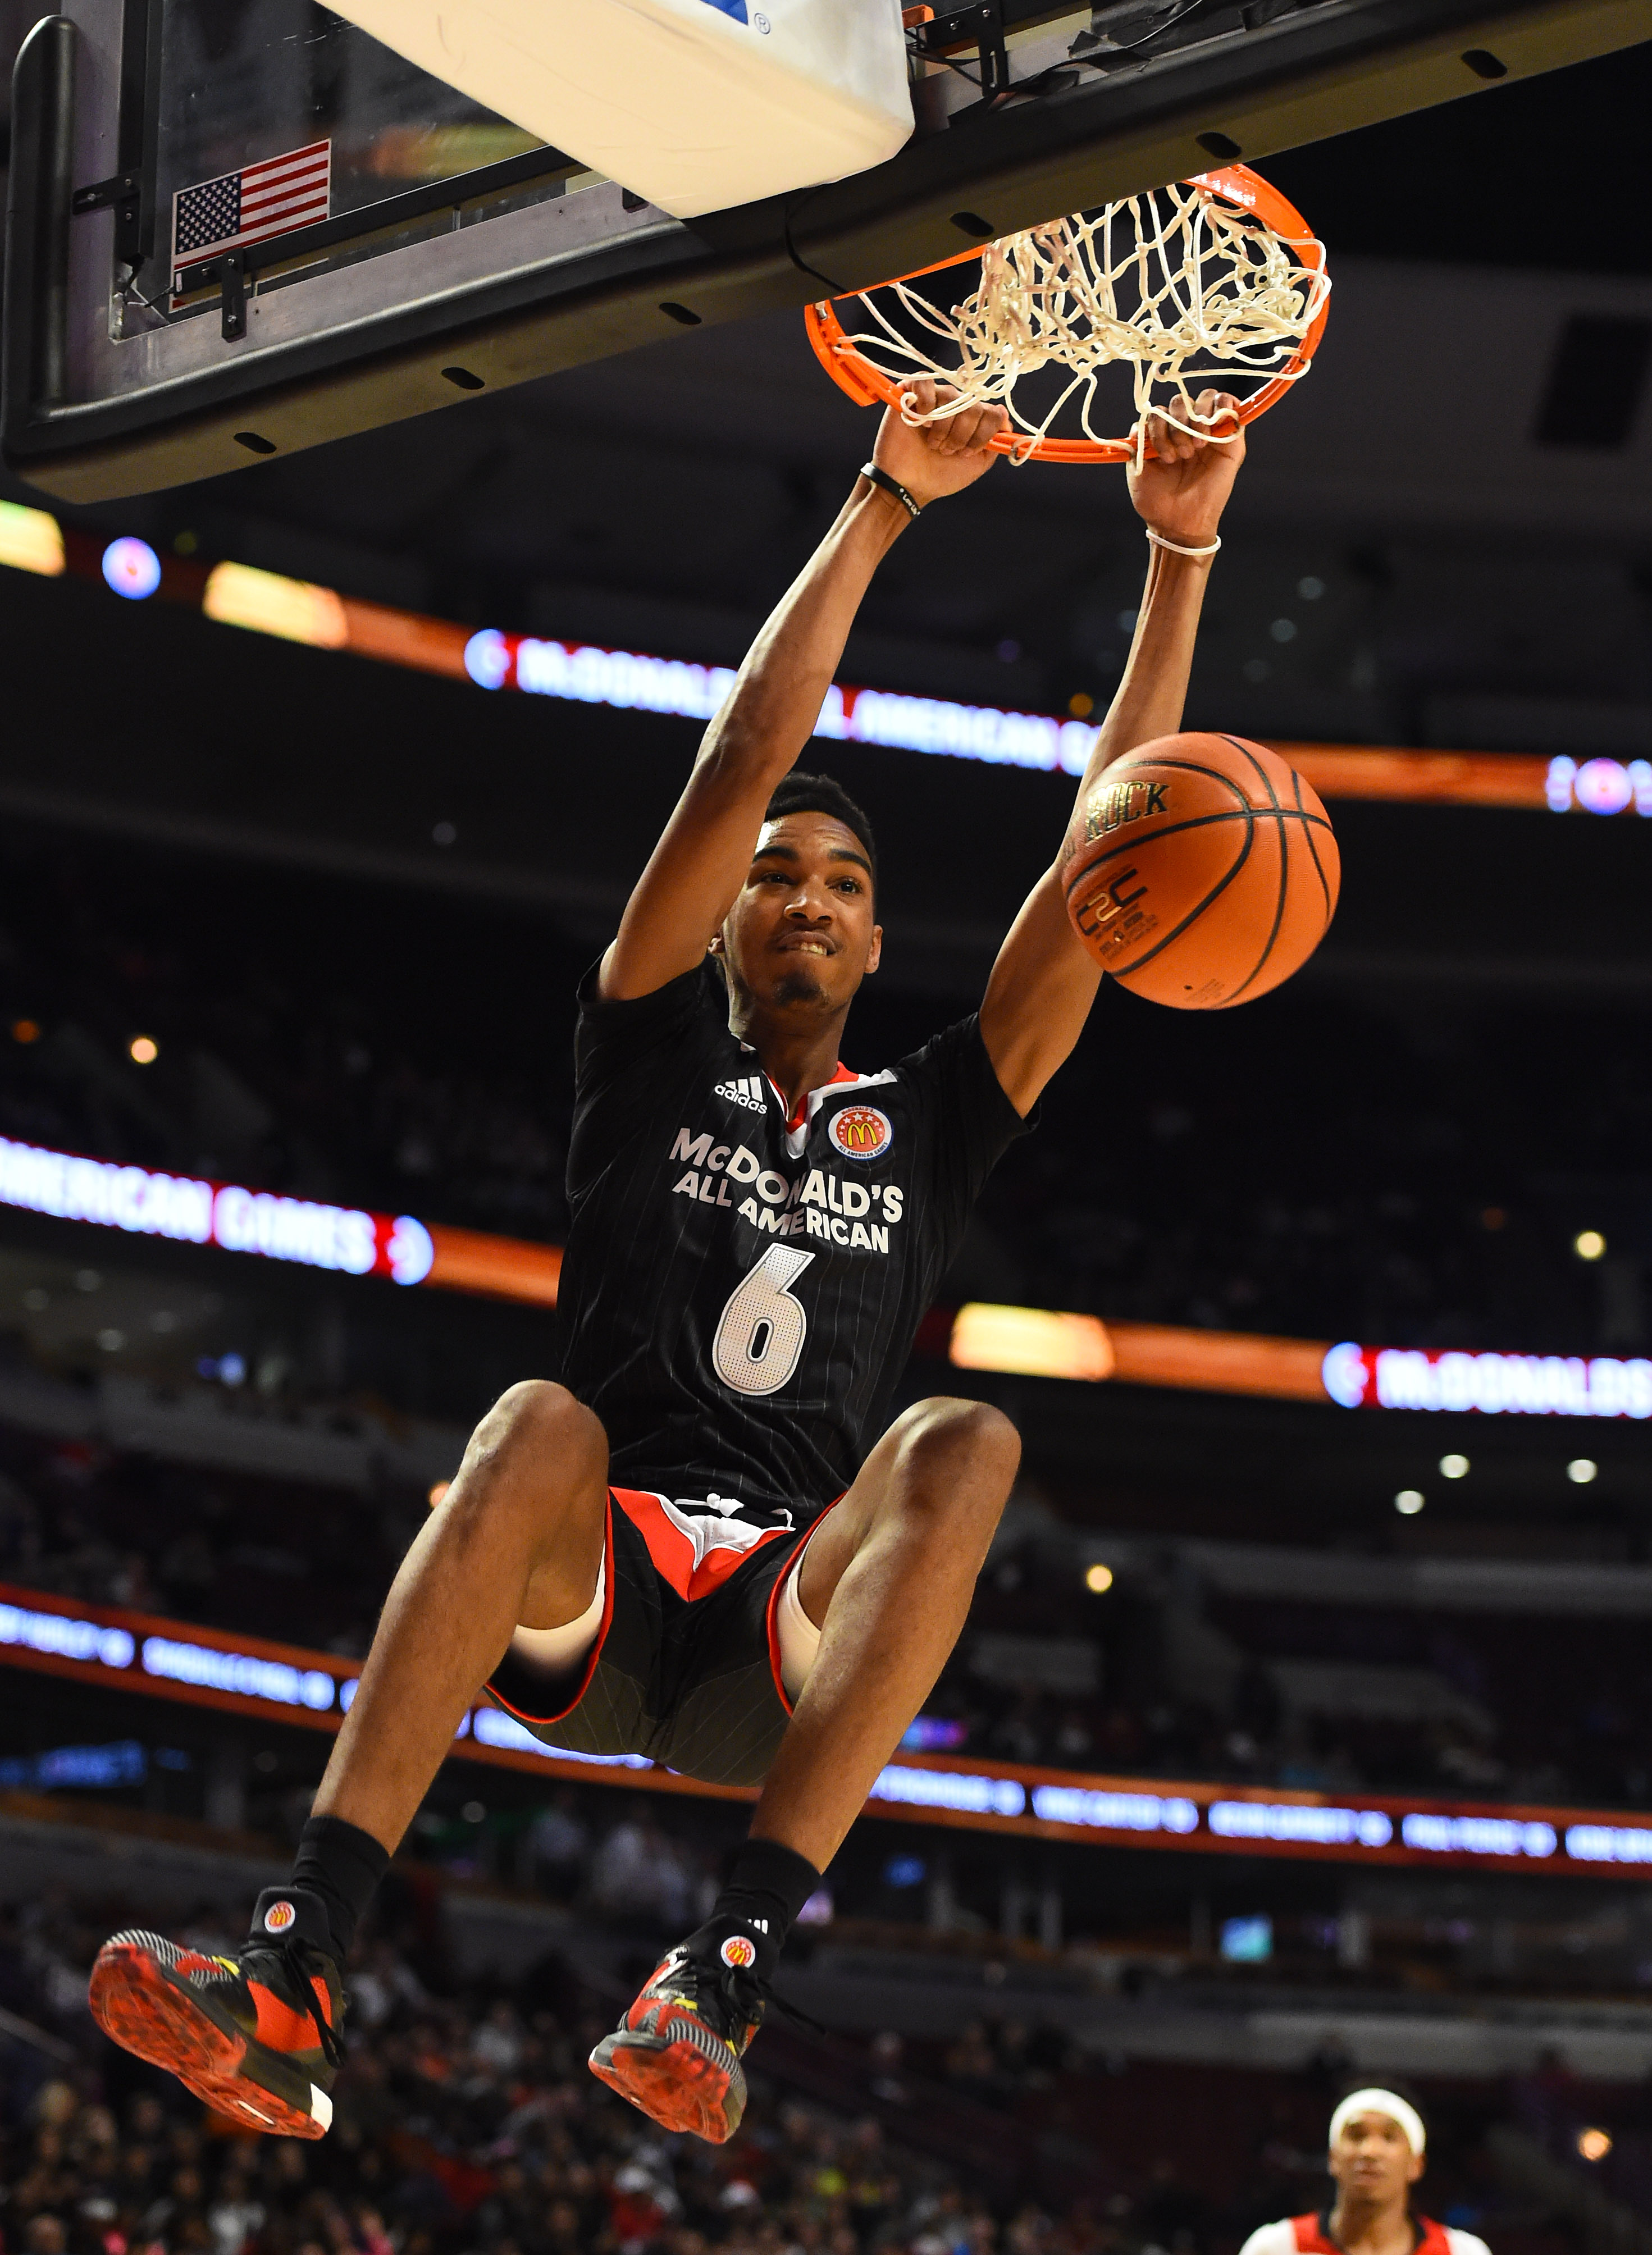 Terrance Ferguson dunks during the McDonald's All American Game (Photo: Mike DiNovo, USA TODAY Sports)